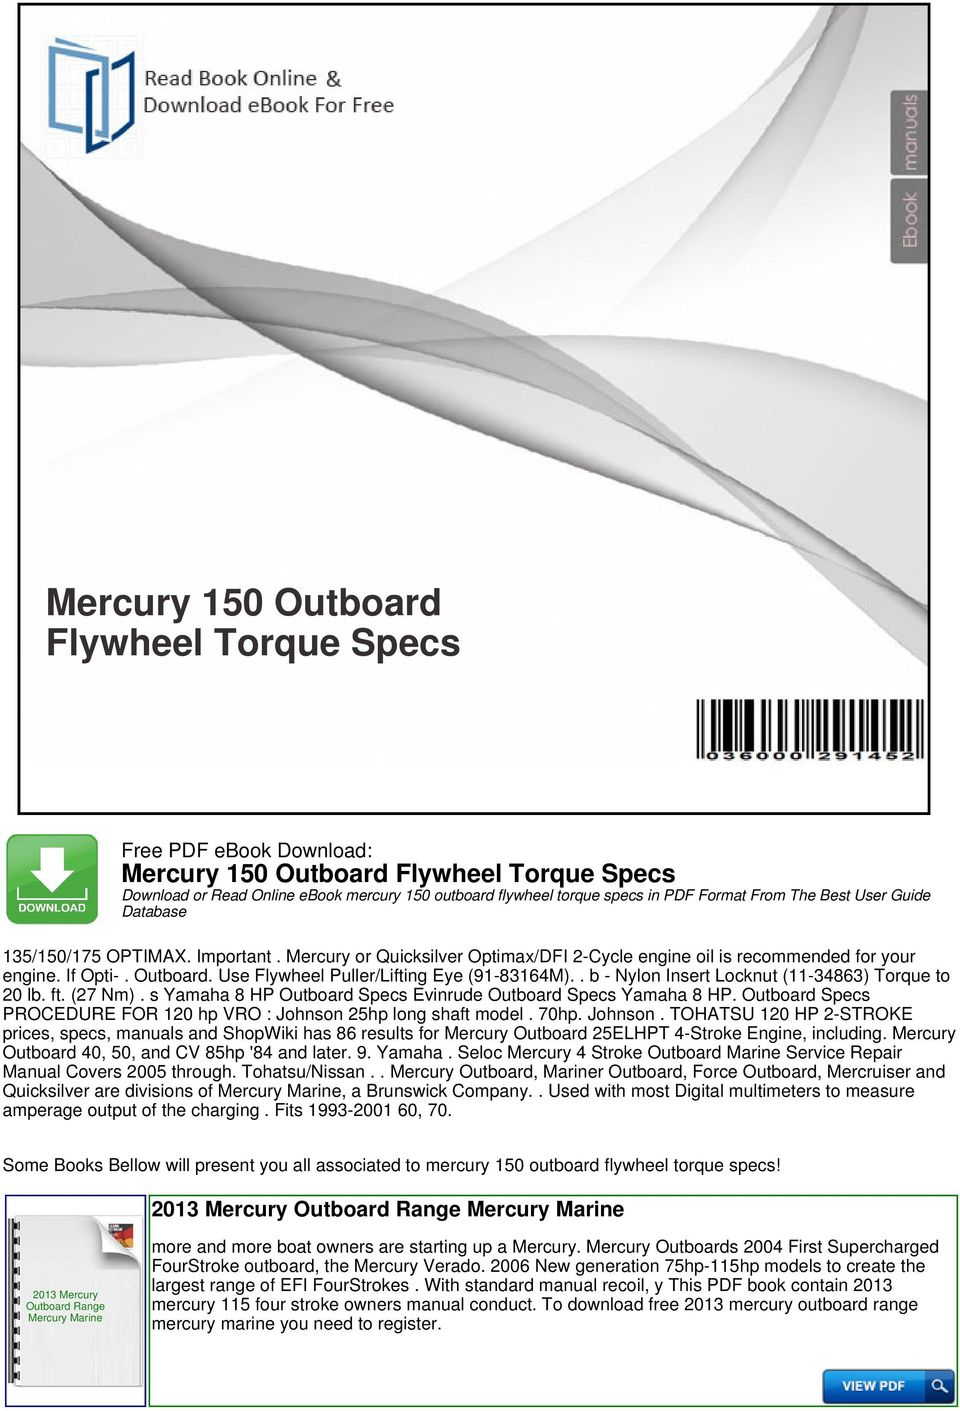 ... owners manual conduct. To download free 2013 mercury outboard range  mercury marine you. Use Flywheel Puller/Lifting Eye (91-83164M).. b - Nylon